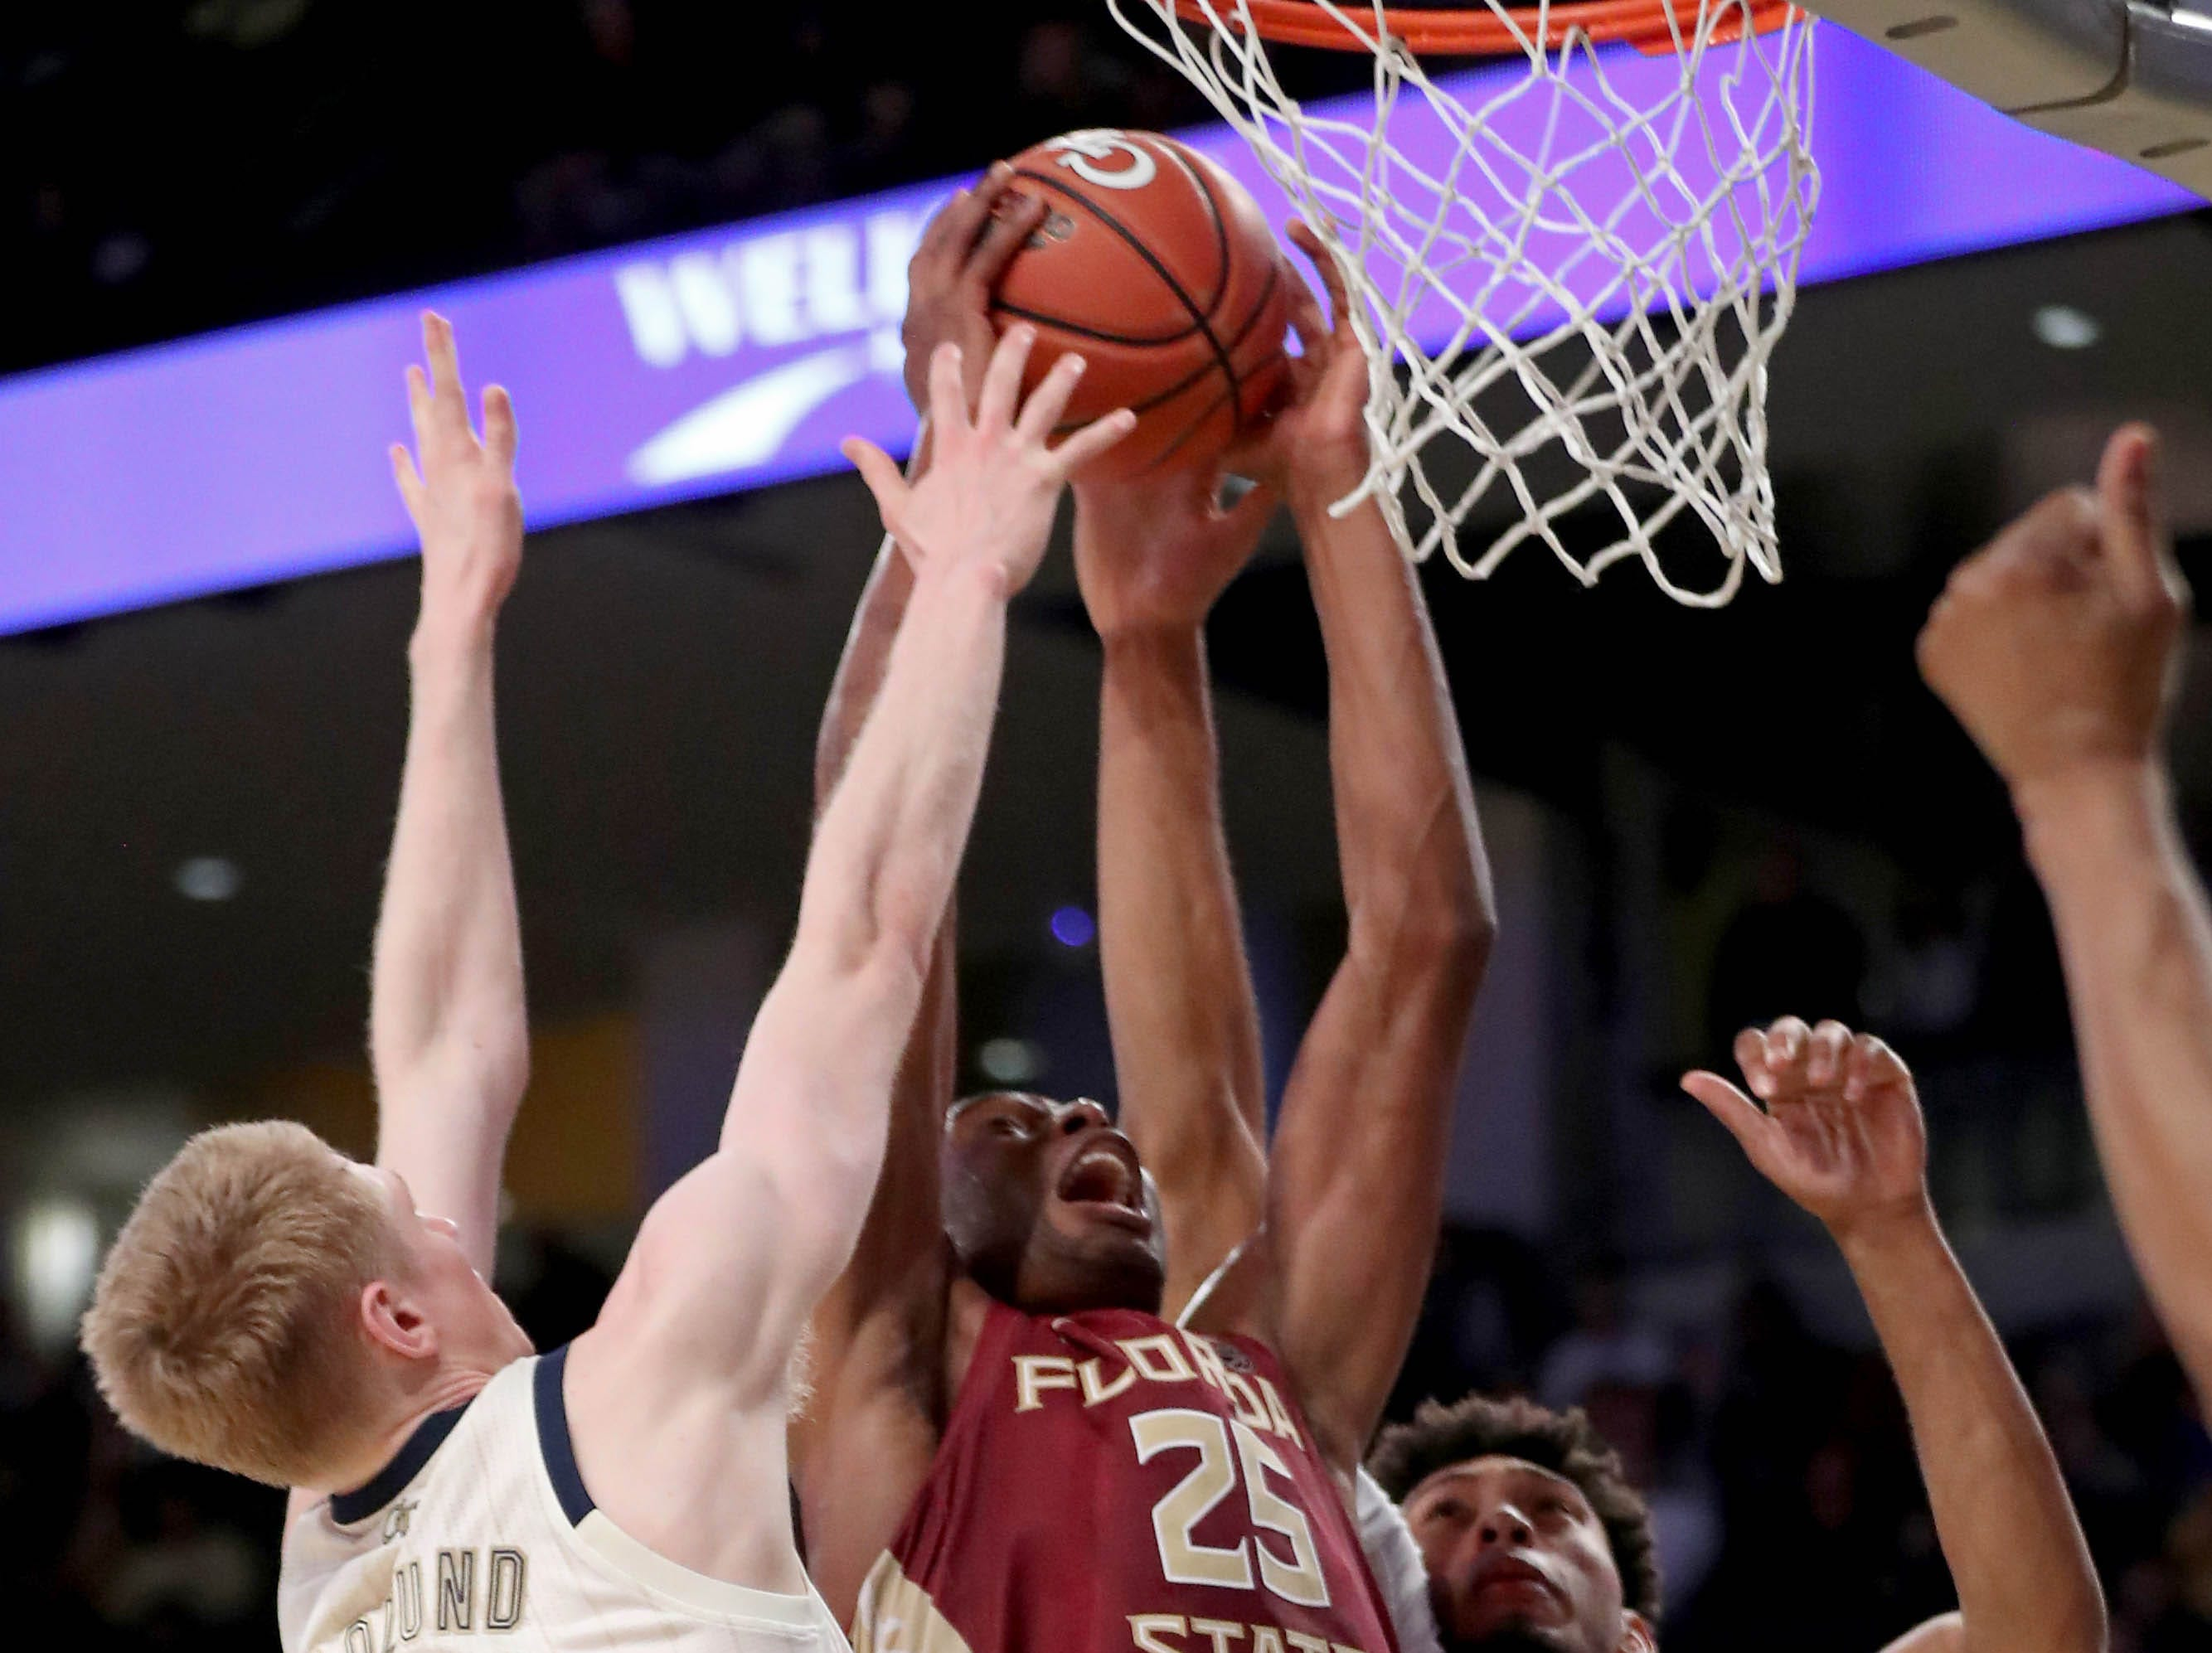 Feb 16, 2019; Atlanta, GA, USA; Florida State Seminoles forward Mfiondu Kabengele (25) attempts a shot against Georgia Tech Yellow Jackets forward Kristian Sjolund (35) and forward James Banks III (1) in the second half at McCamish Pavilion. Mandatory Credit: Jason Getz-USA TODAY Sports